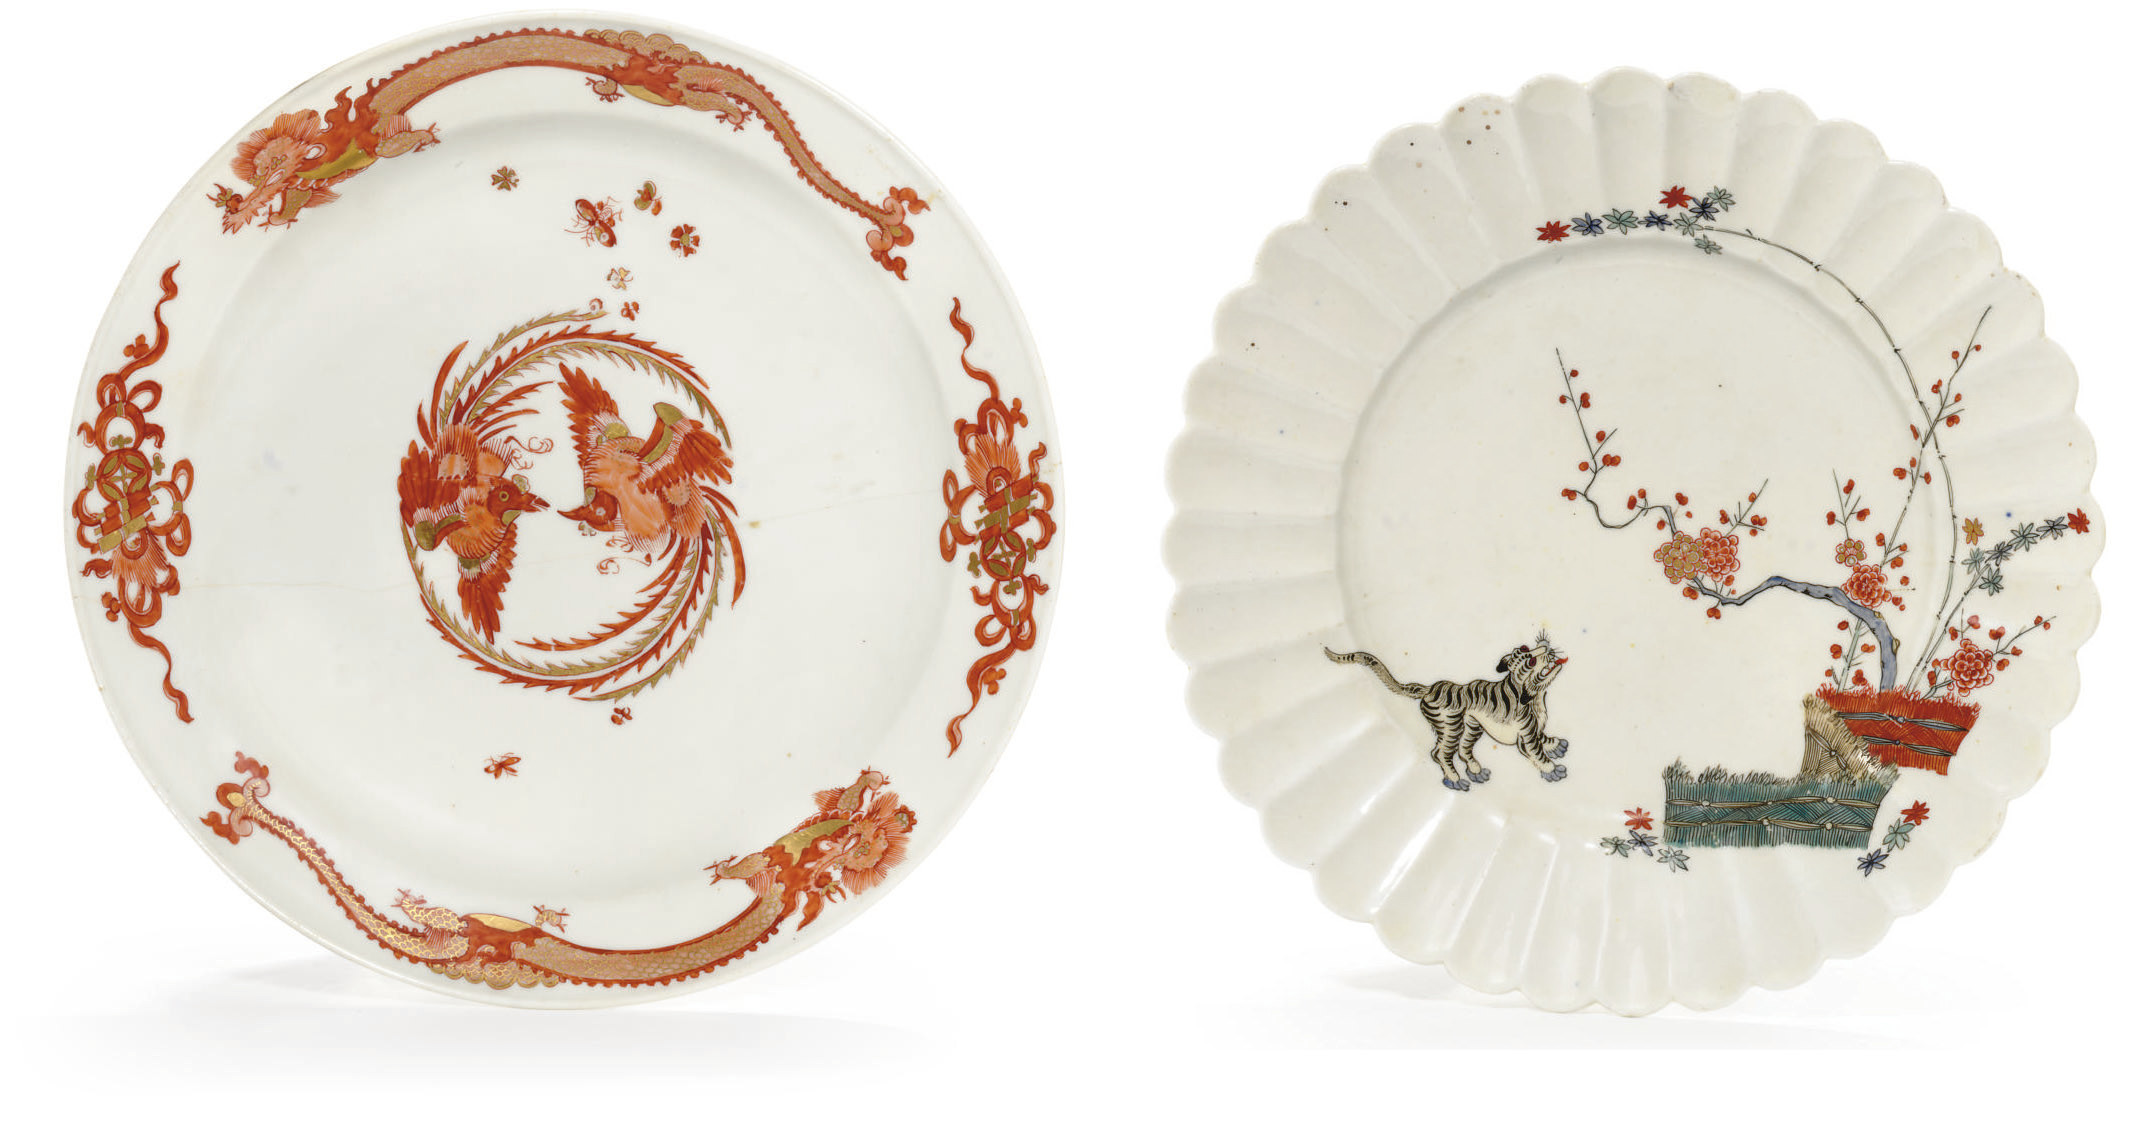 A MEISSEN PLATE AND AN ENGLISH